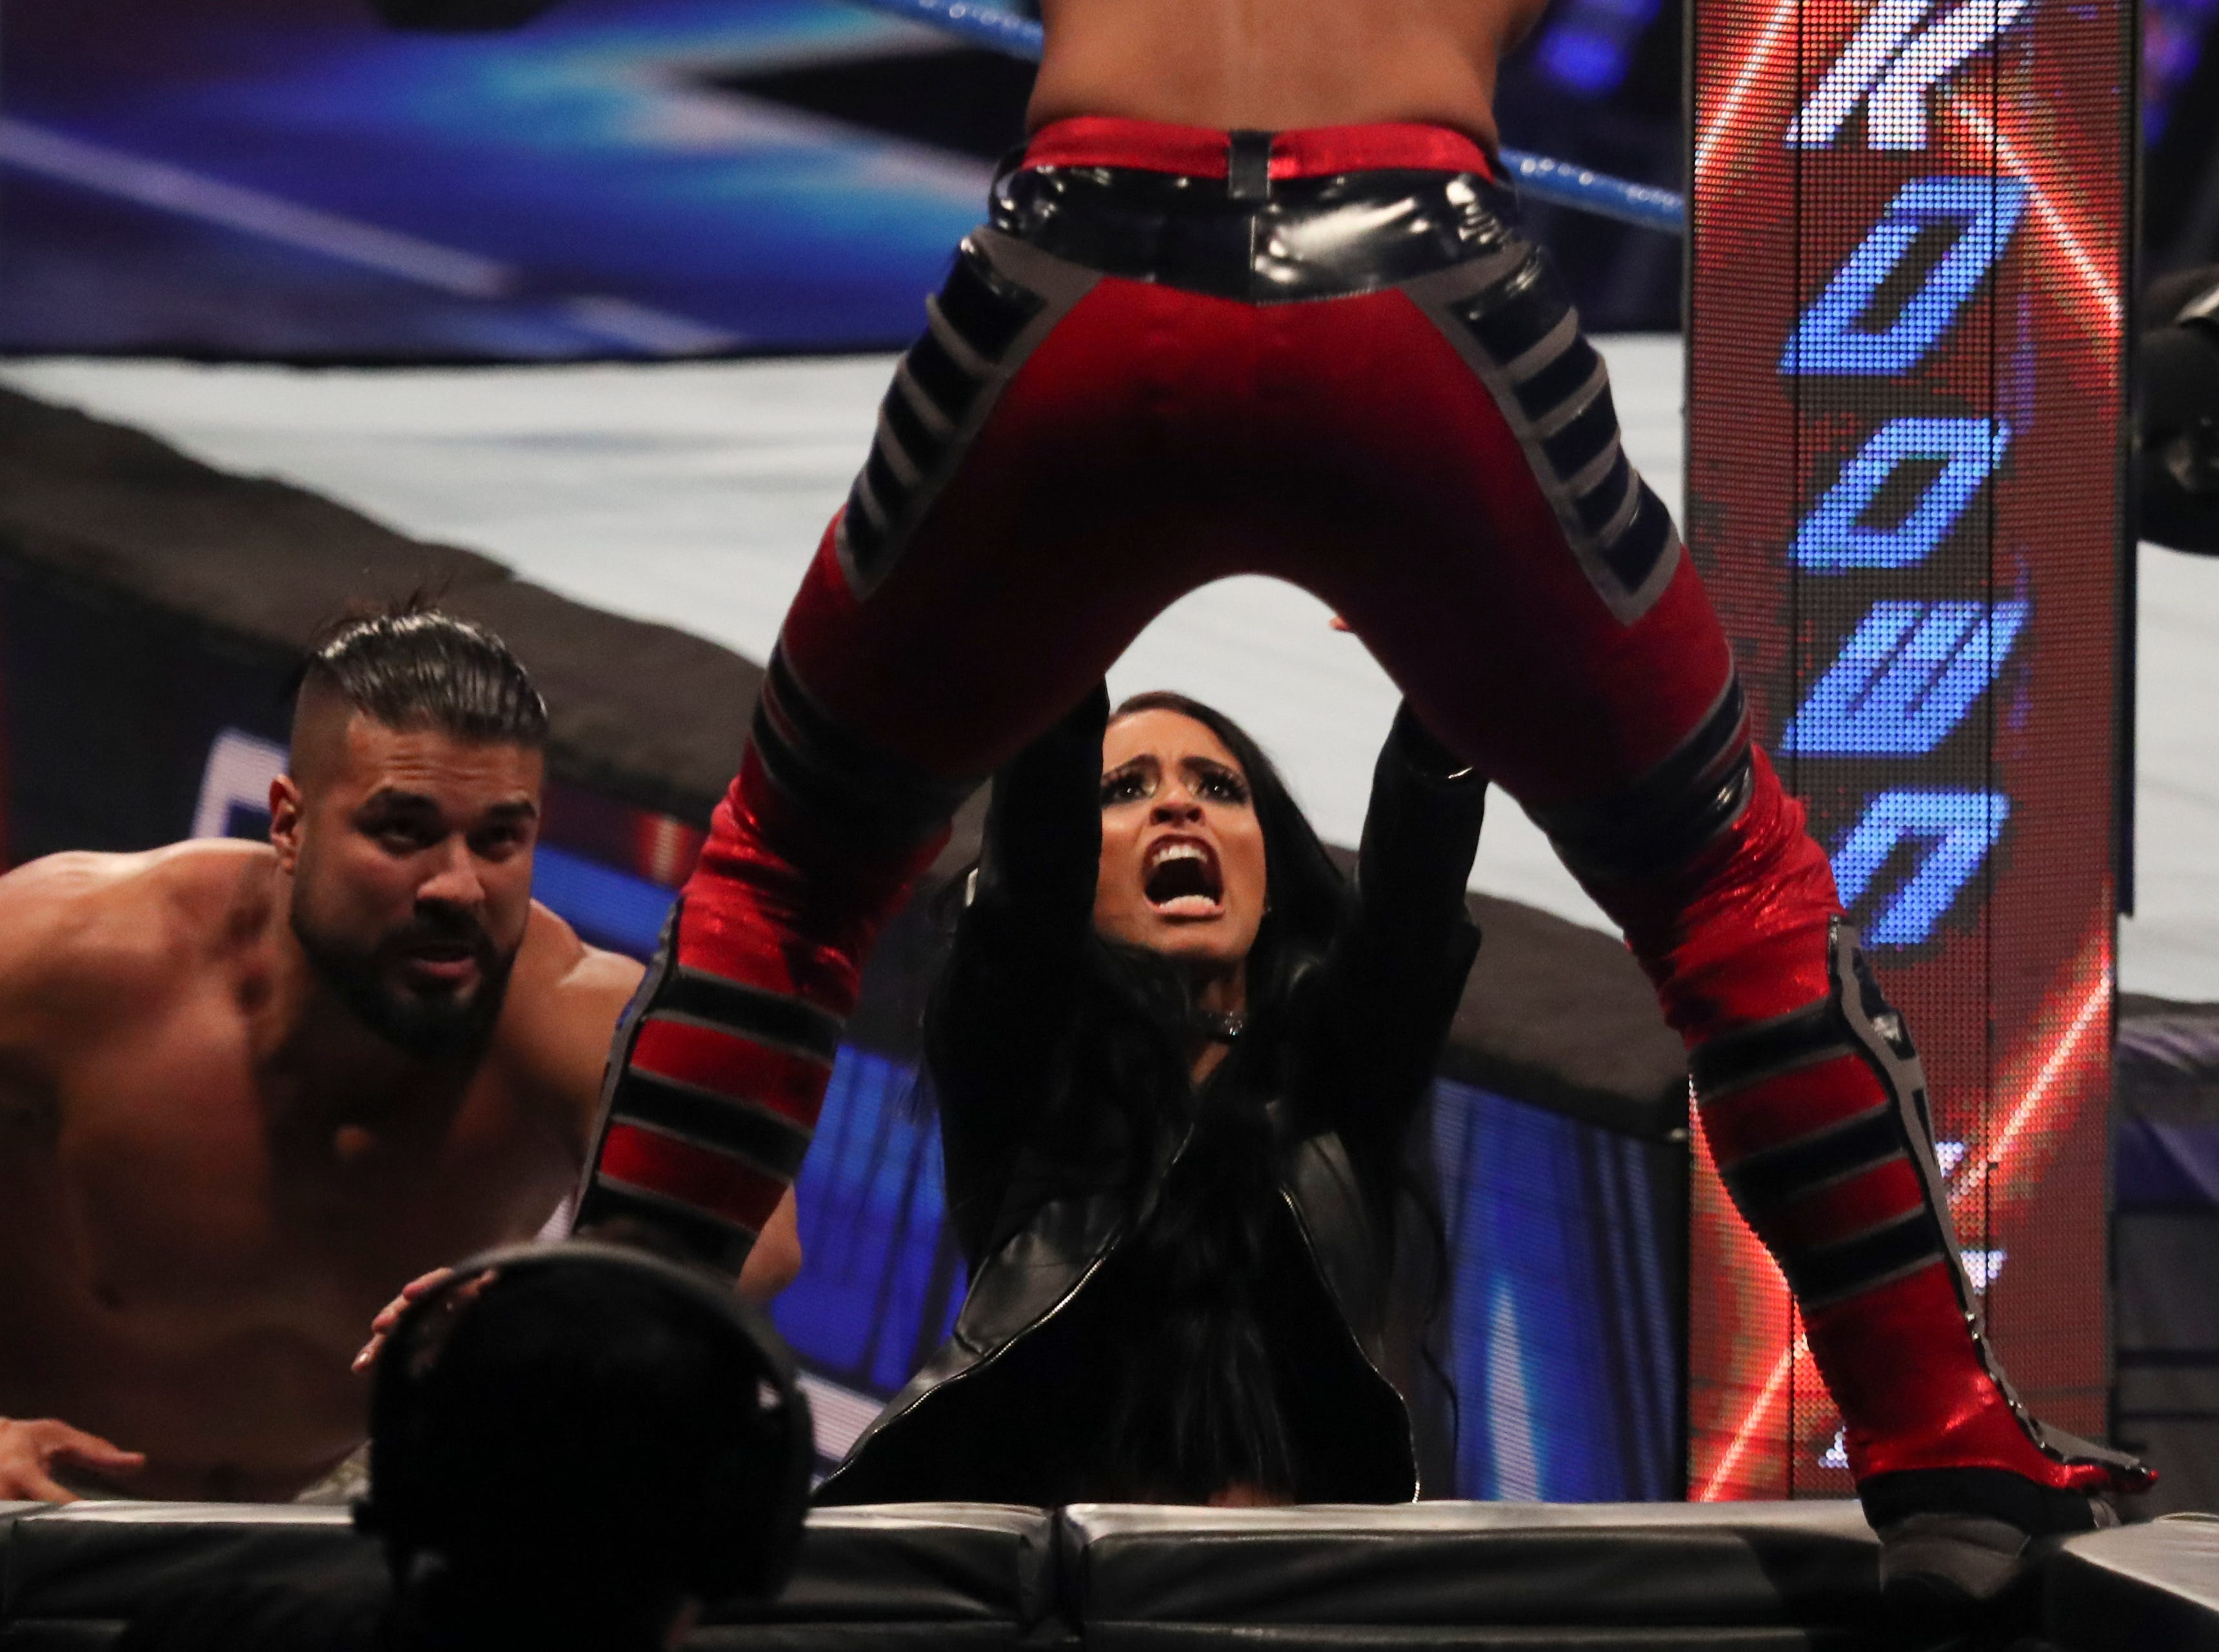 Zelina Vega and Andrade react to Ali during WWE Smackdown on May 7.